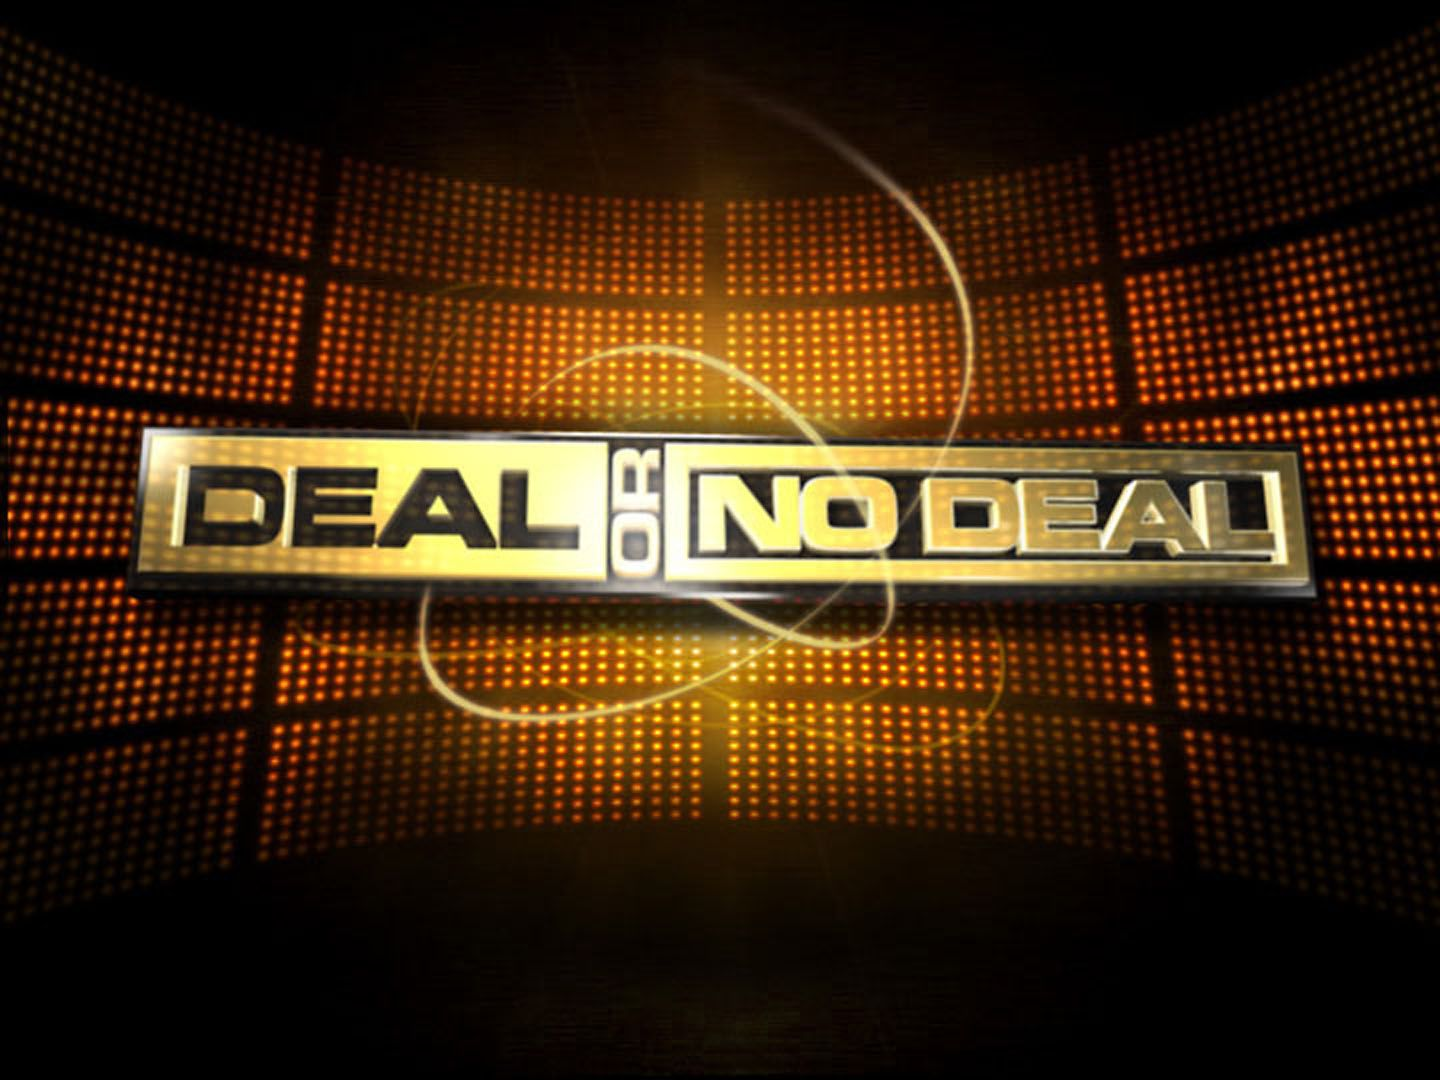 A do it yourself deal or no deal would be so fun you could even a do it yourself deal or no deal would be so fun you could even game showstv solutioingenieria Images